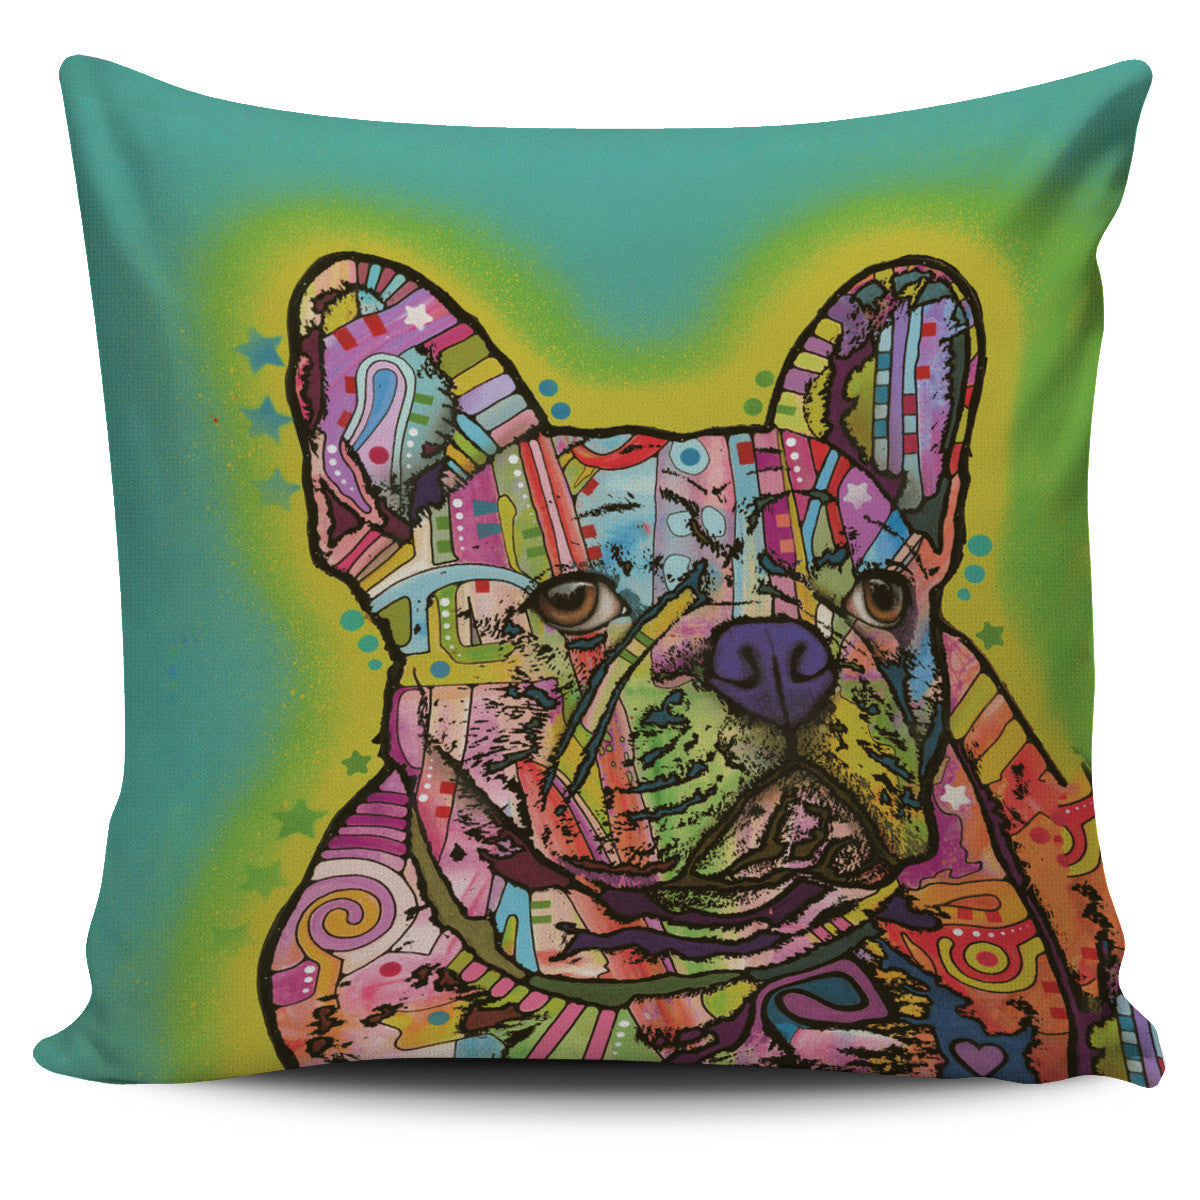 French Bulldog Series Pillow Covers Offer